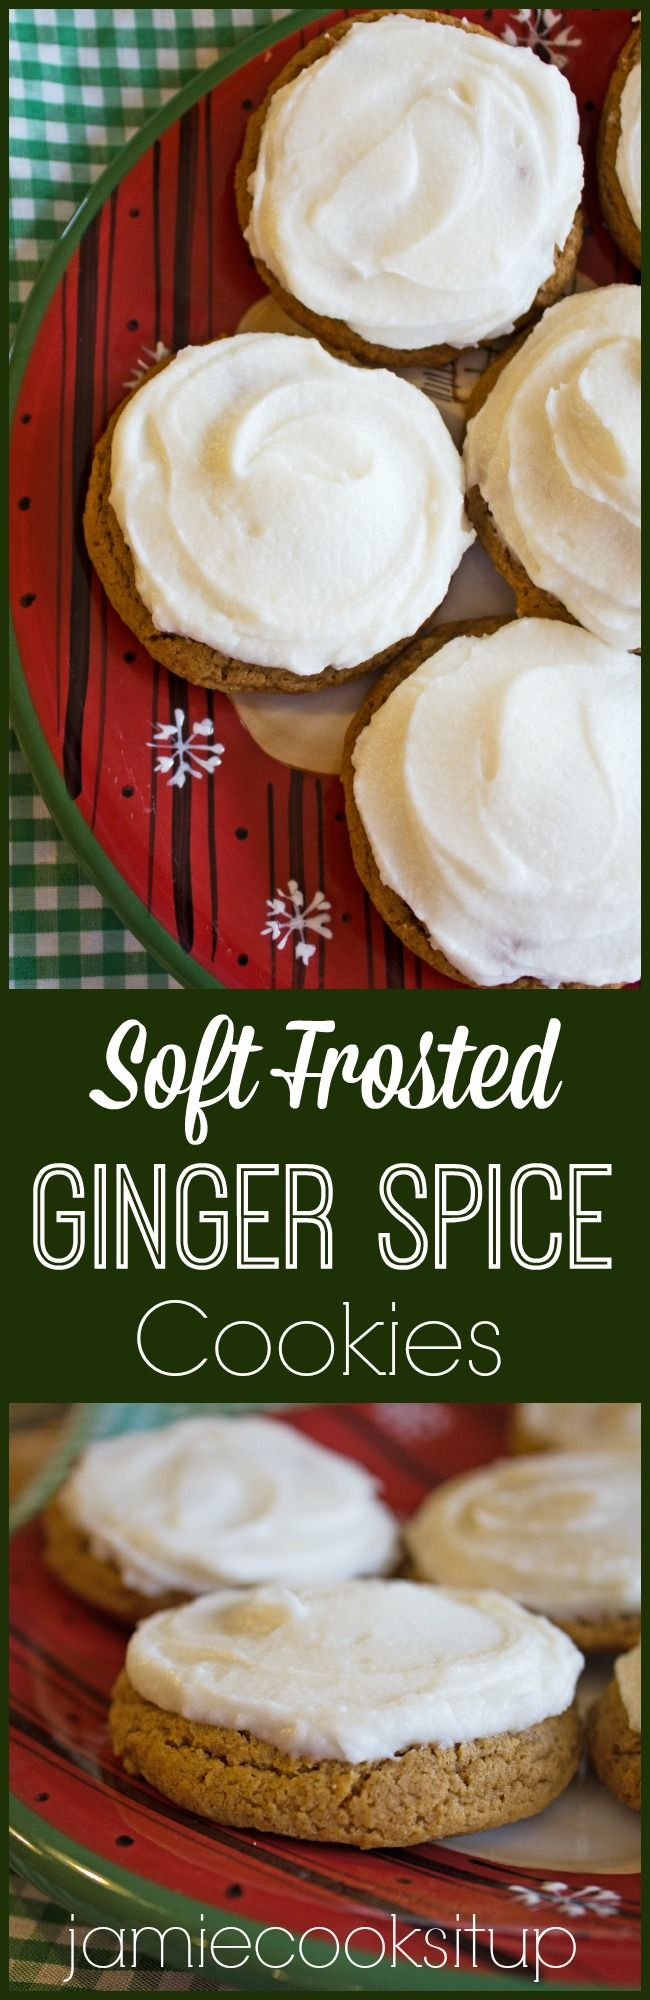 Soft Frosted Ginger Spice Cookies